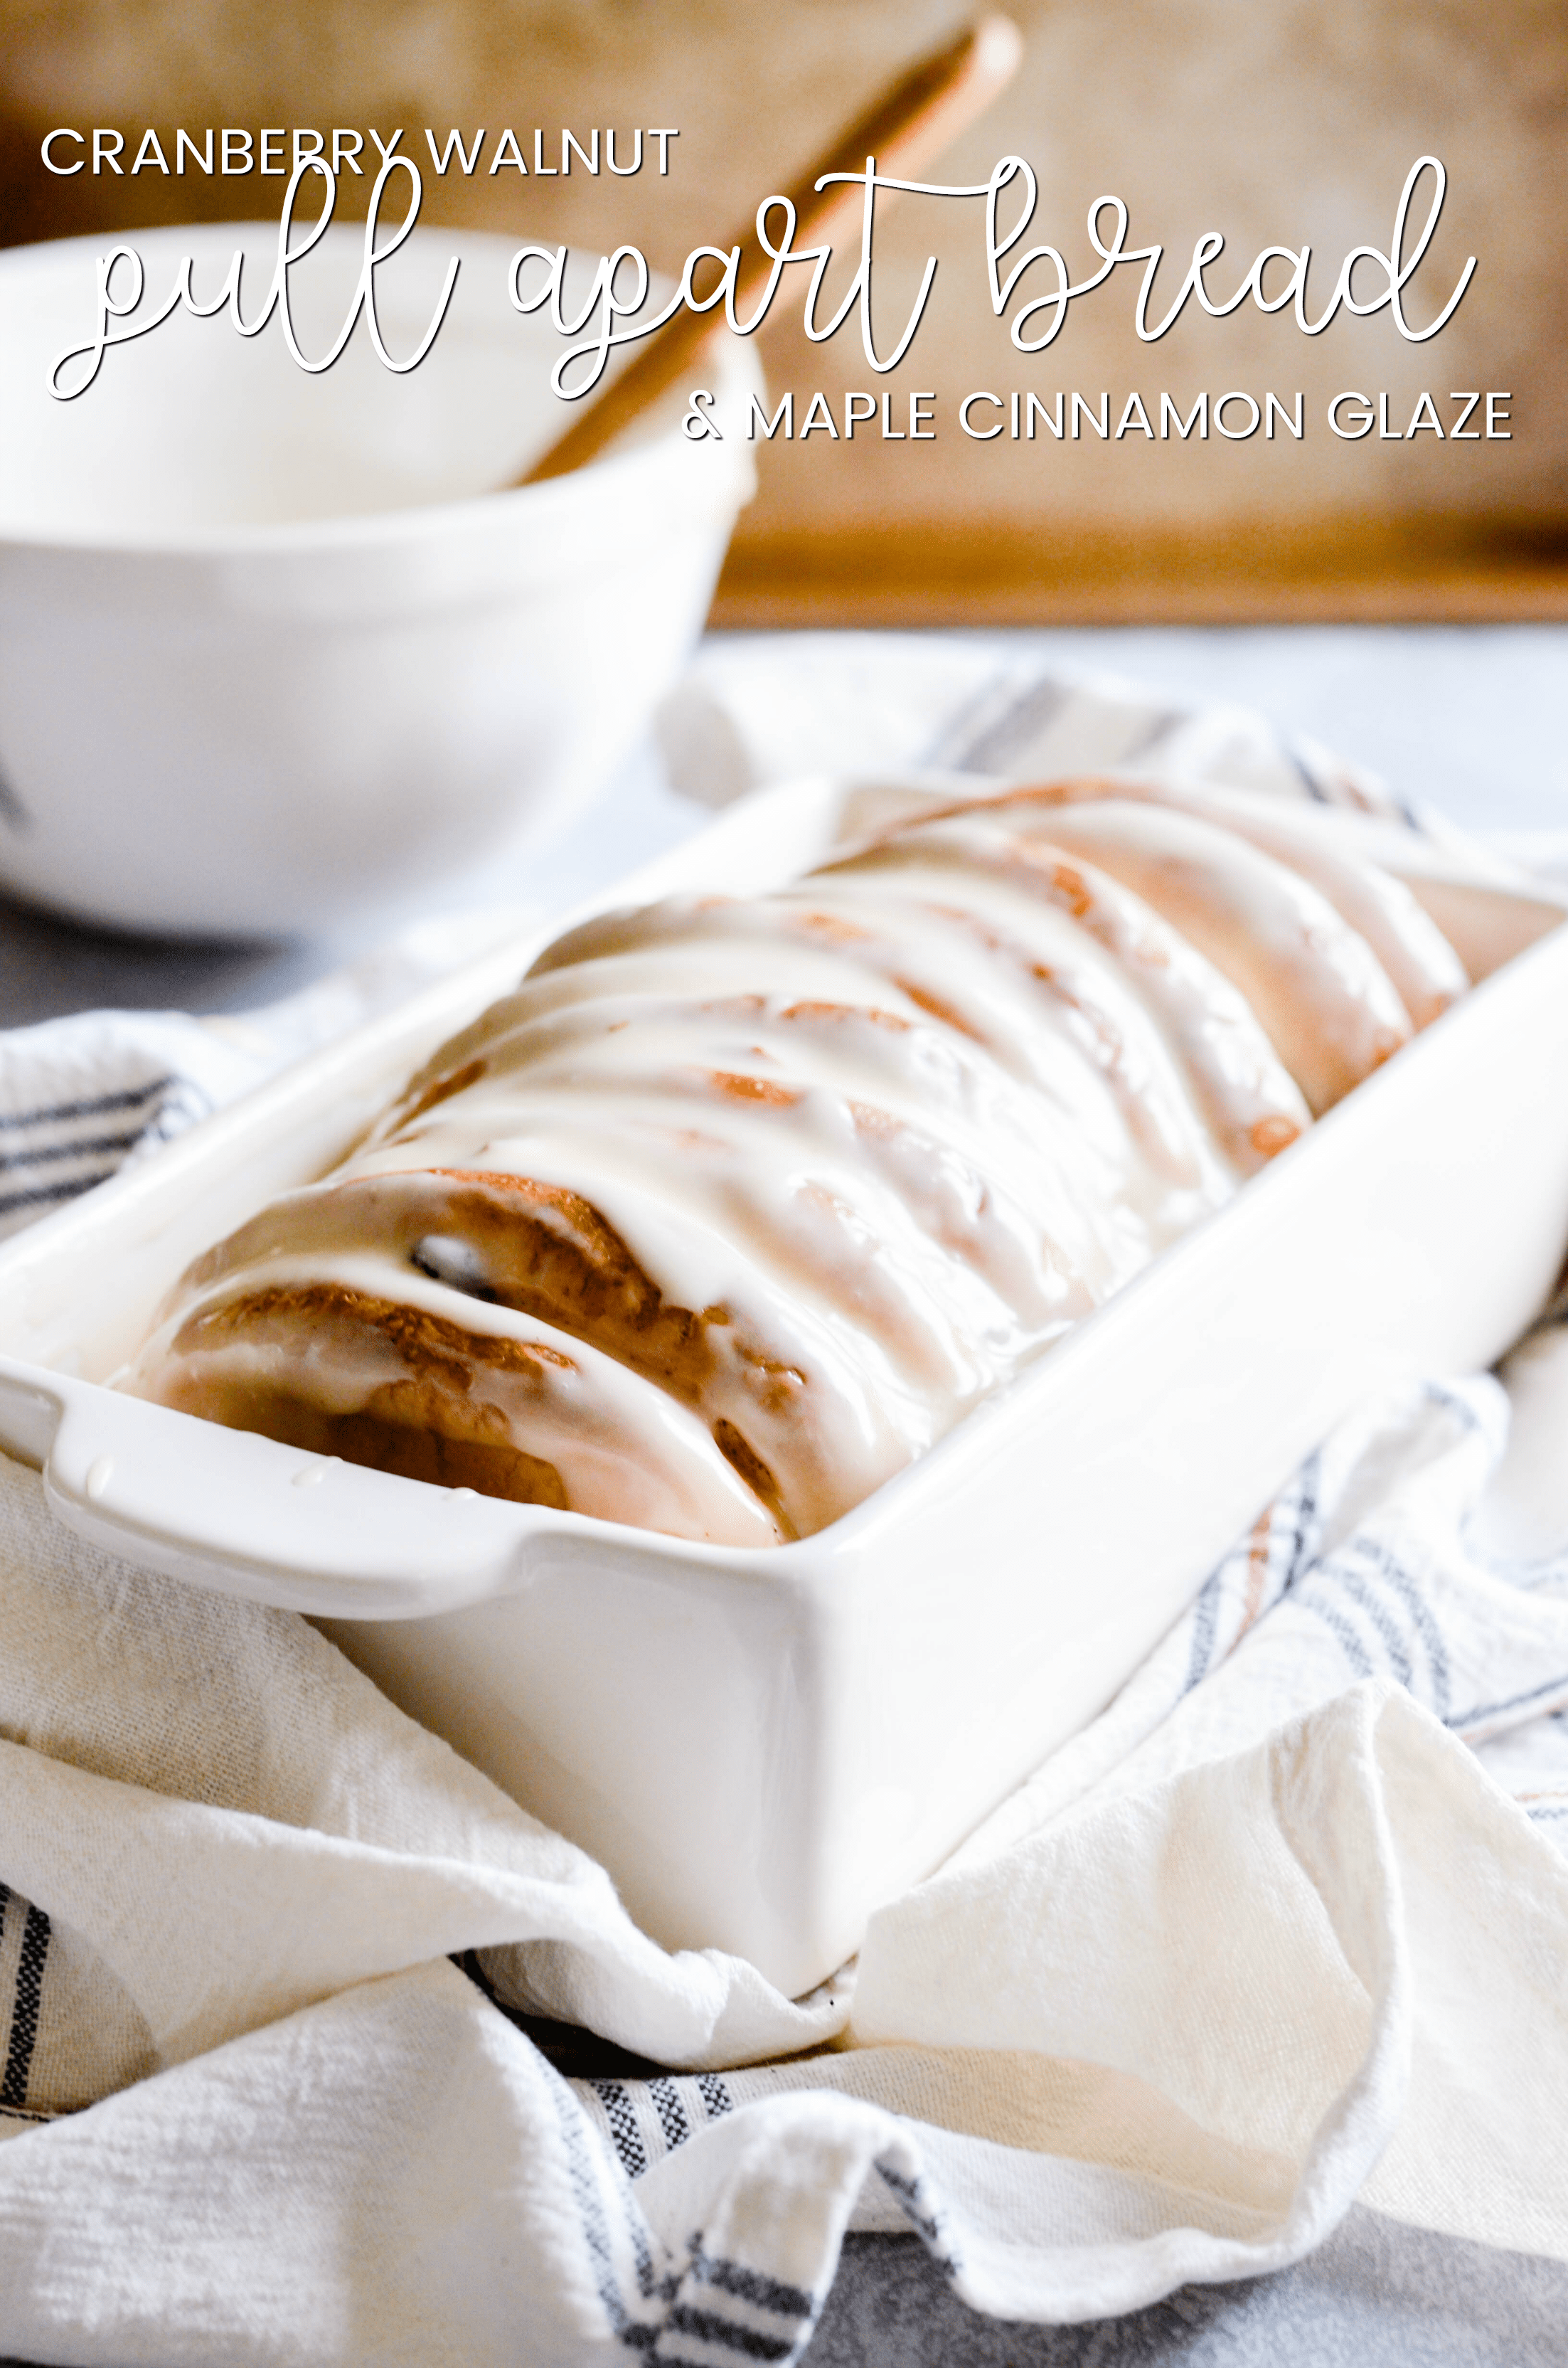 Cranberry Walnut Pull Apart Bread with Maple Glaze